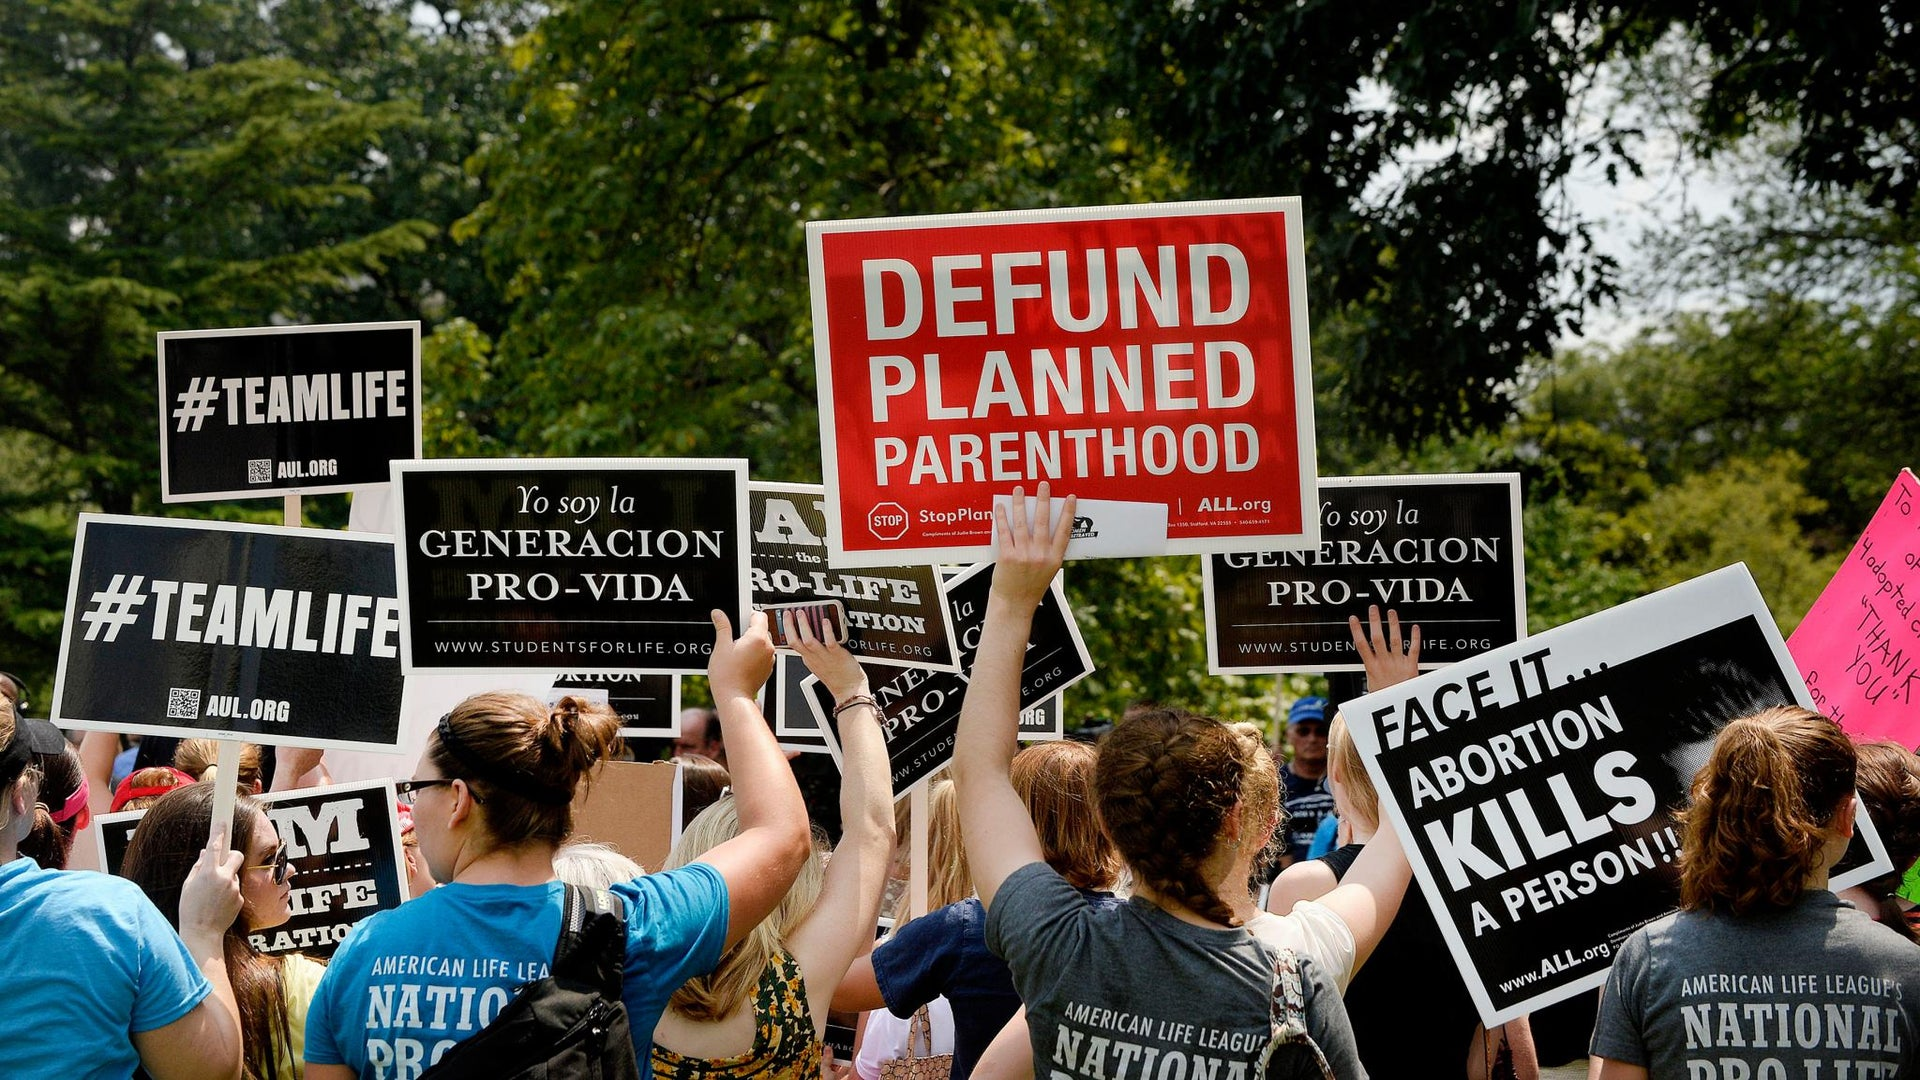 Texas Votes to Defund Planned Parenthood